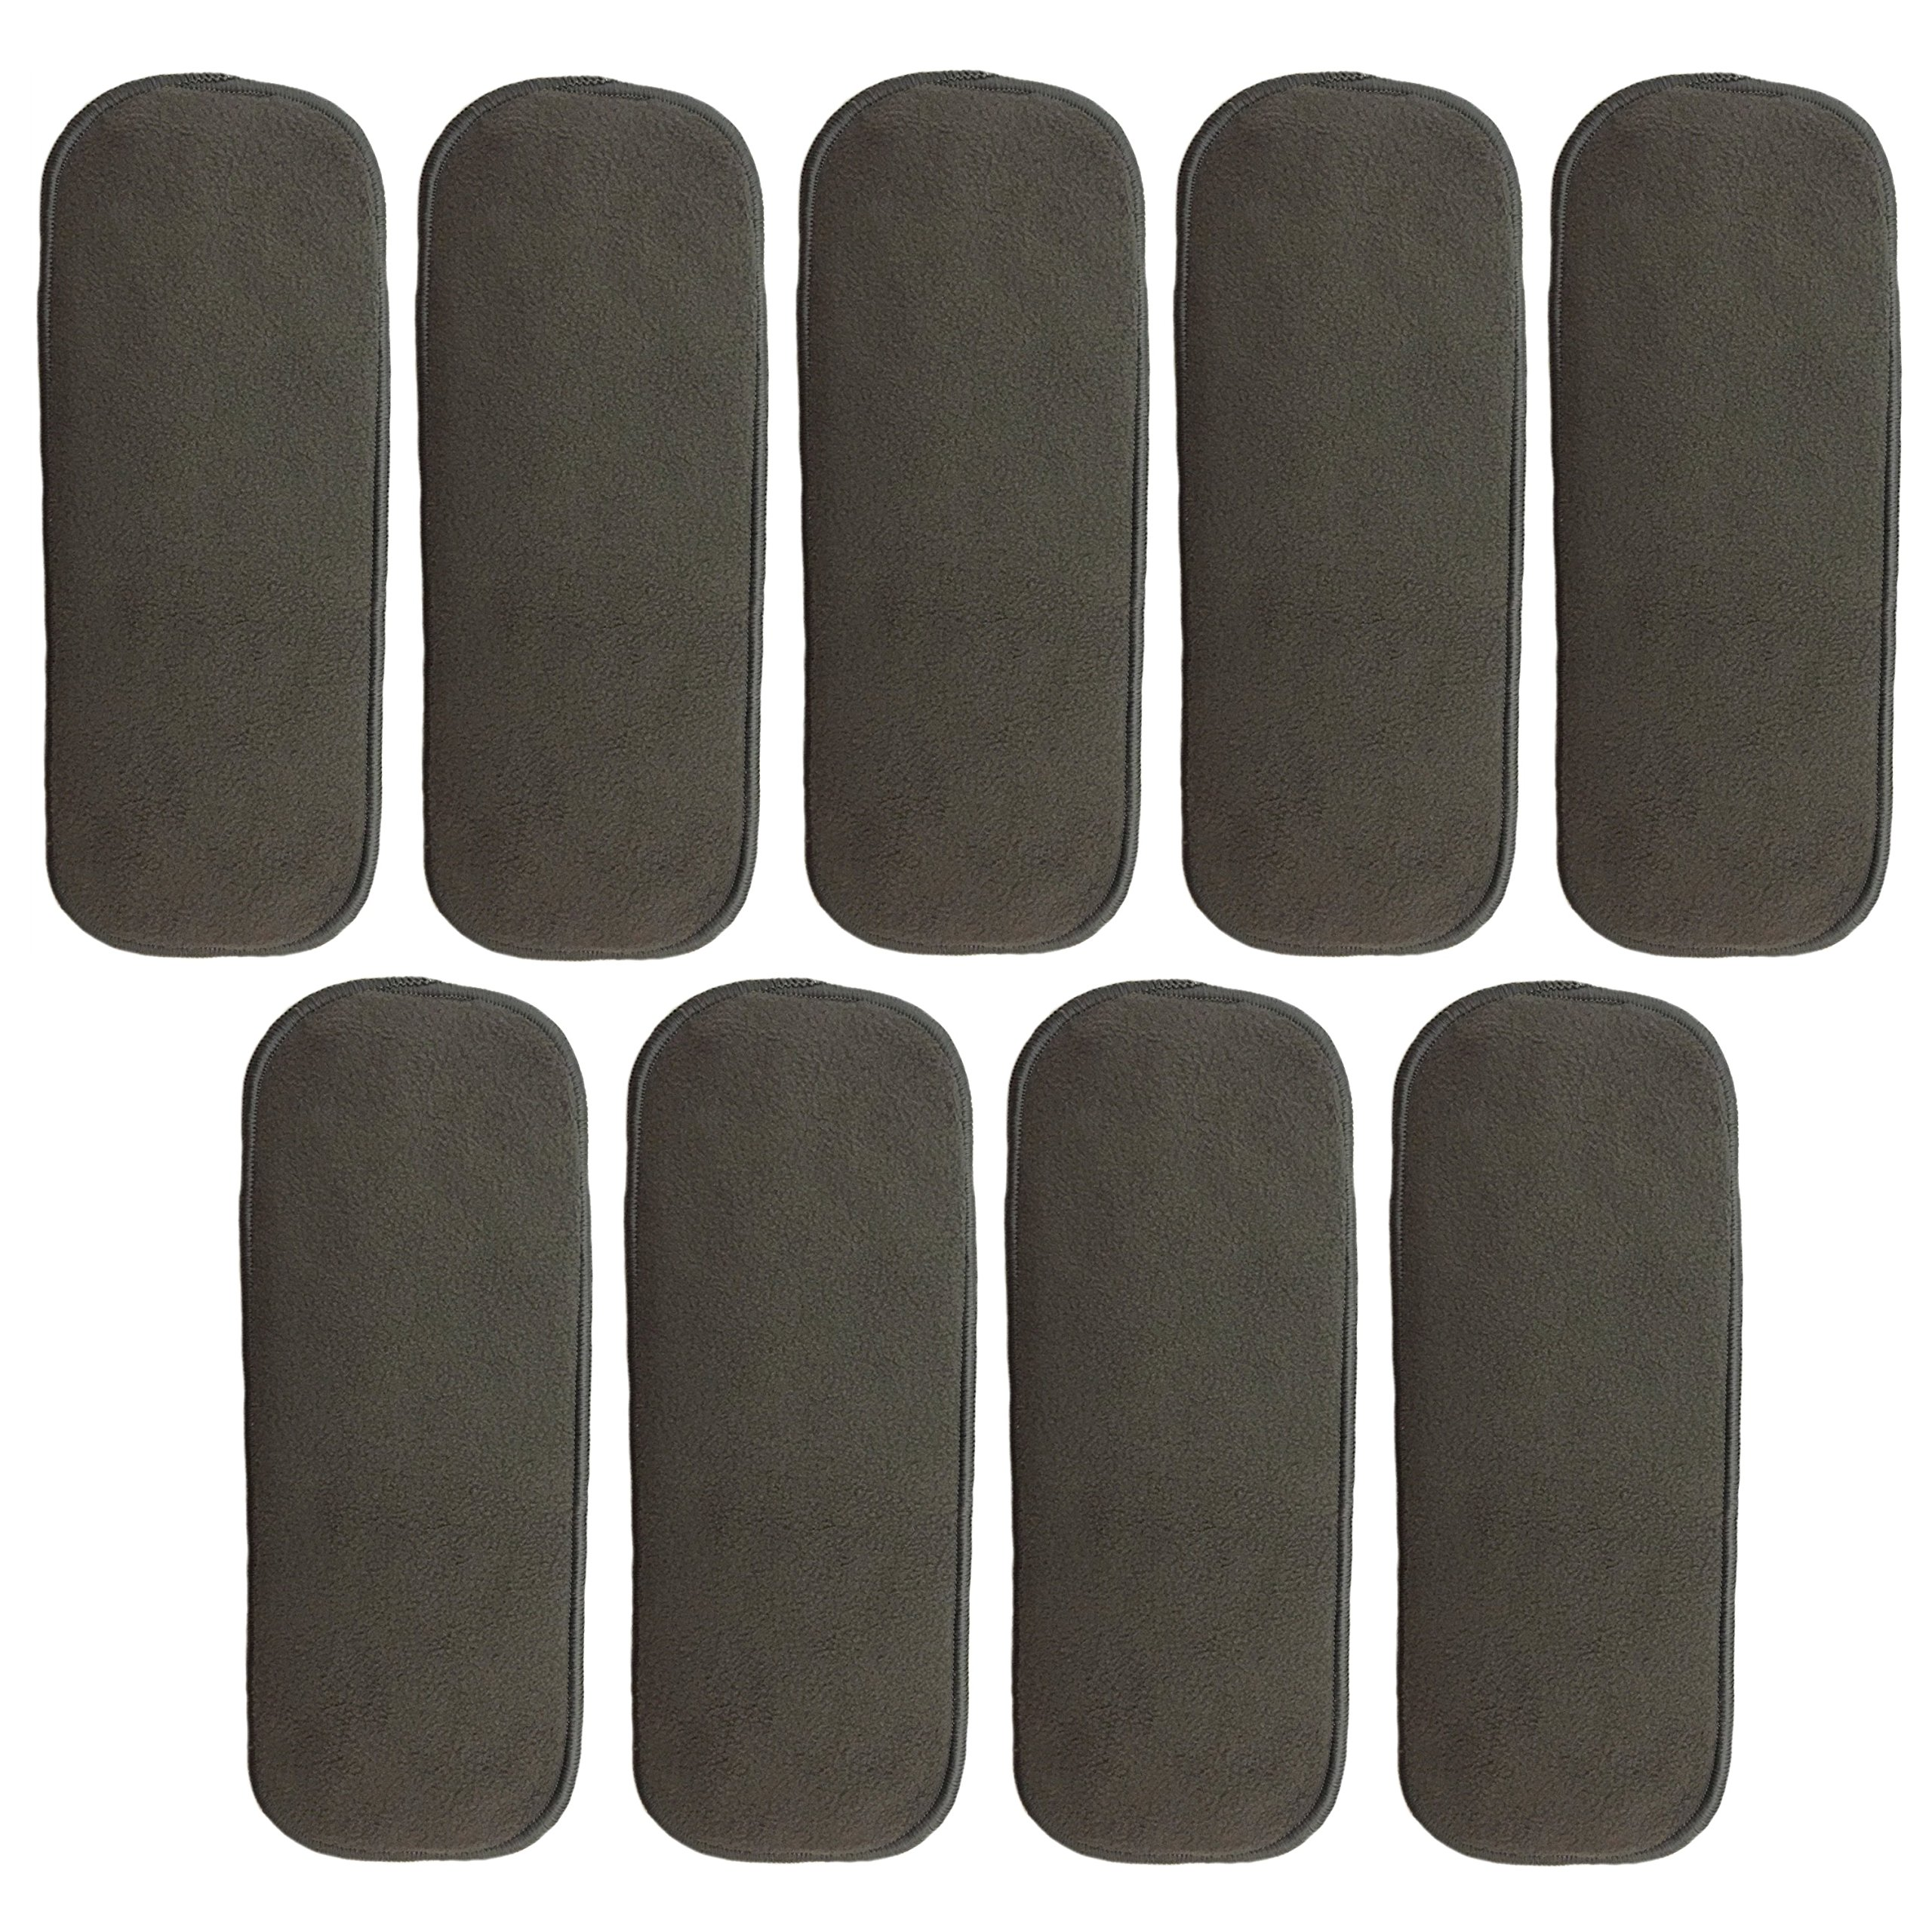 HappyEndings Newborn 5 Layer Charcoal Bamboo Inserts (Pack of 9) by Happy Endings